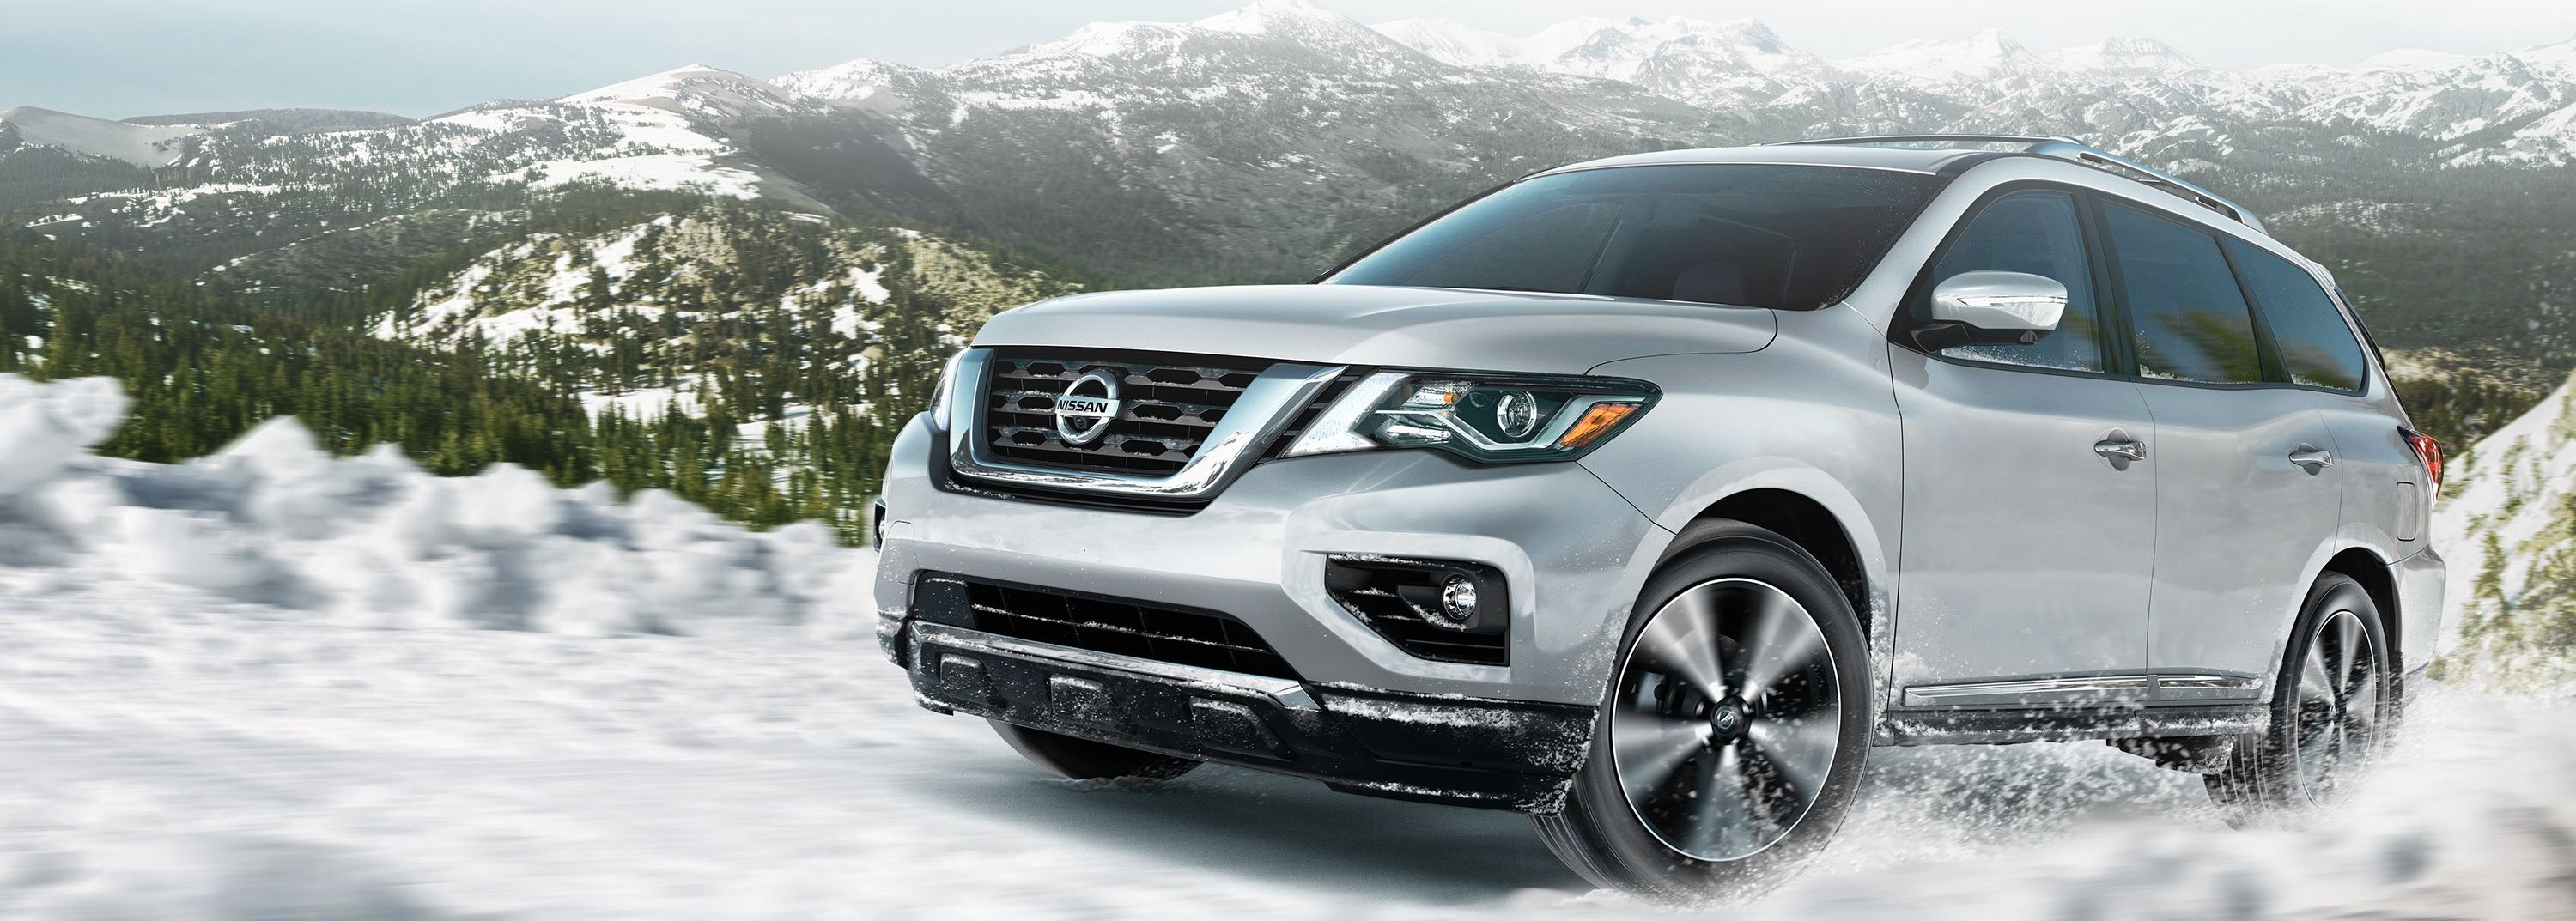 2019 Nissan Pathfinder Rock Creek Edition for Sale near Worcester, MA